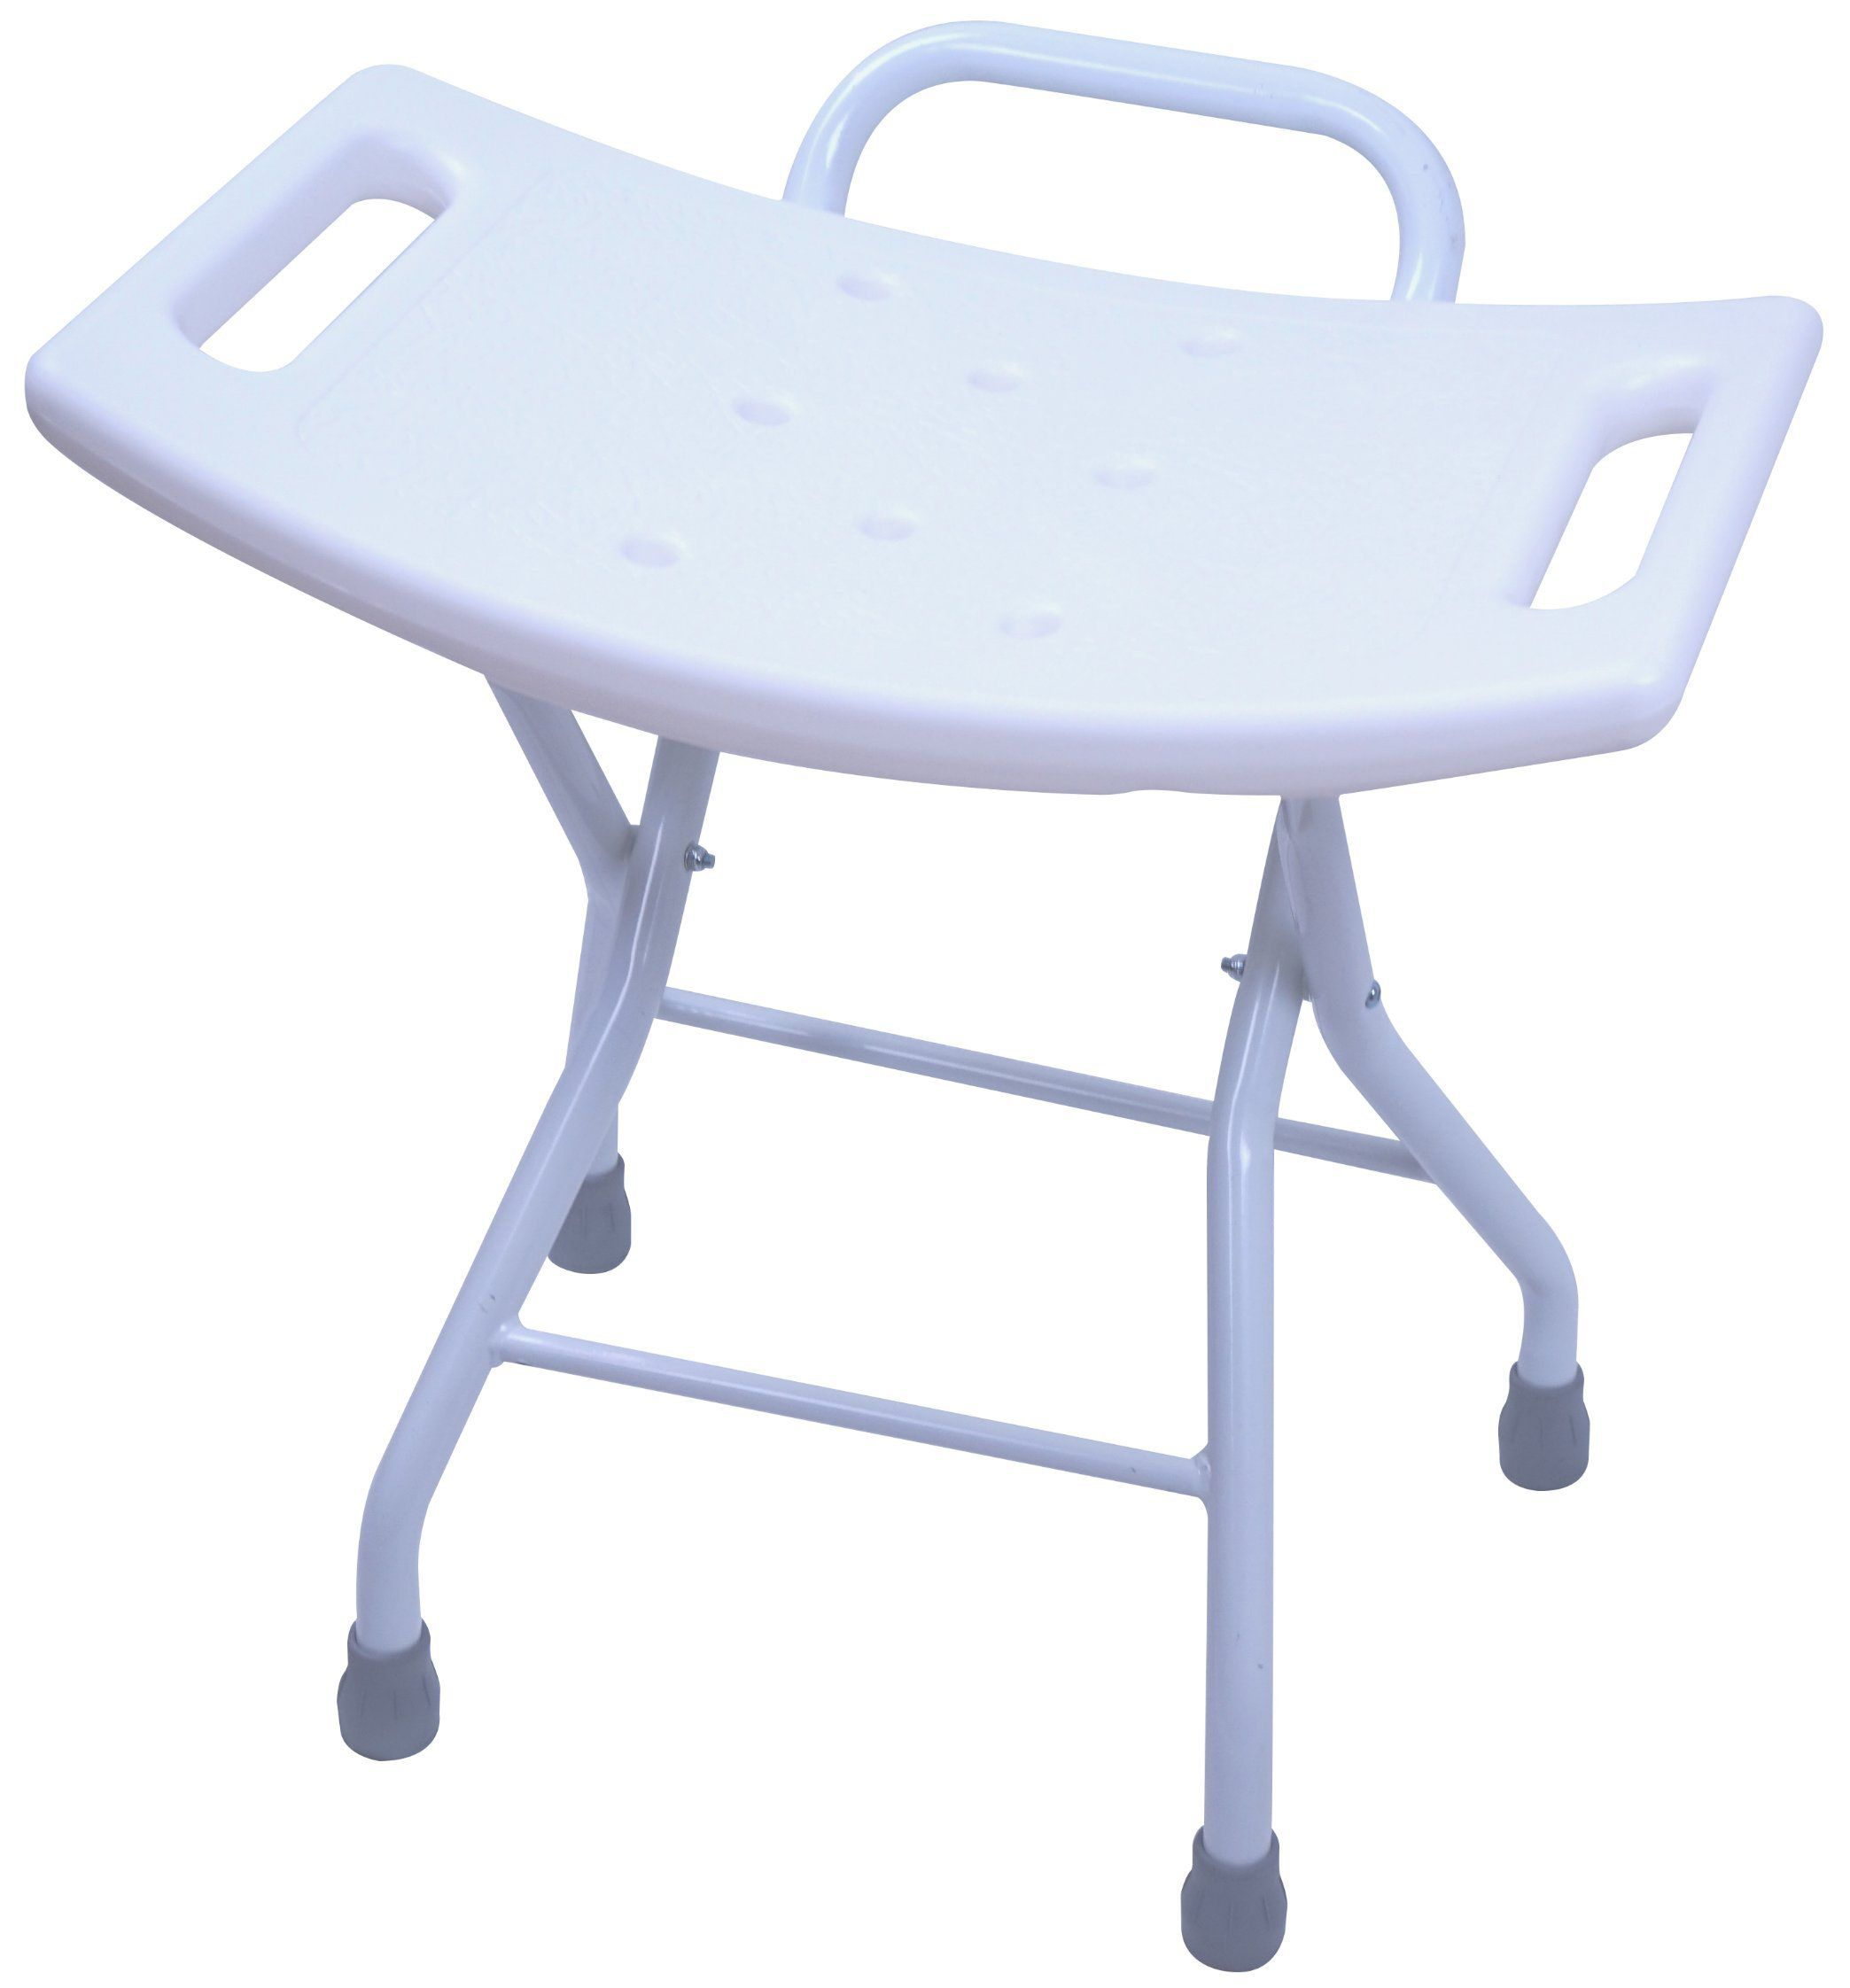 Folding Shower Seat Stool - Portable Bath Bench Chair with Hand Grab ...